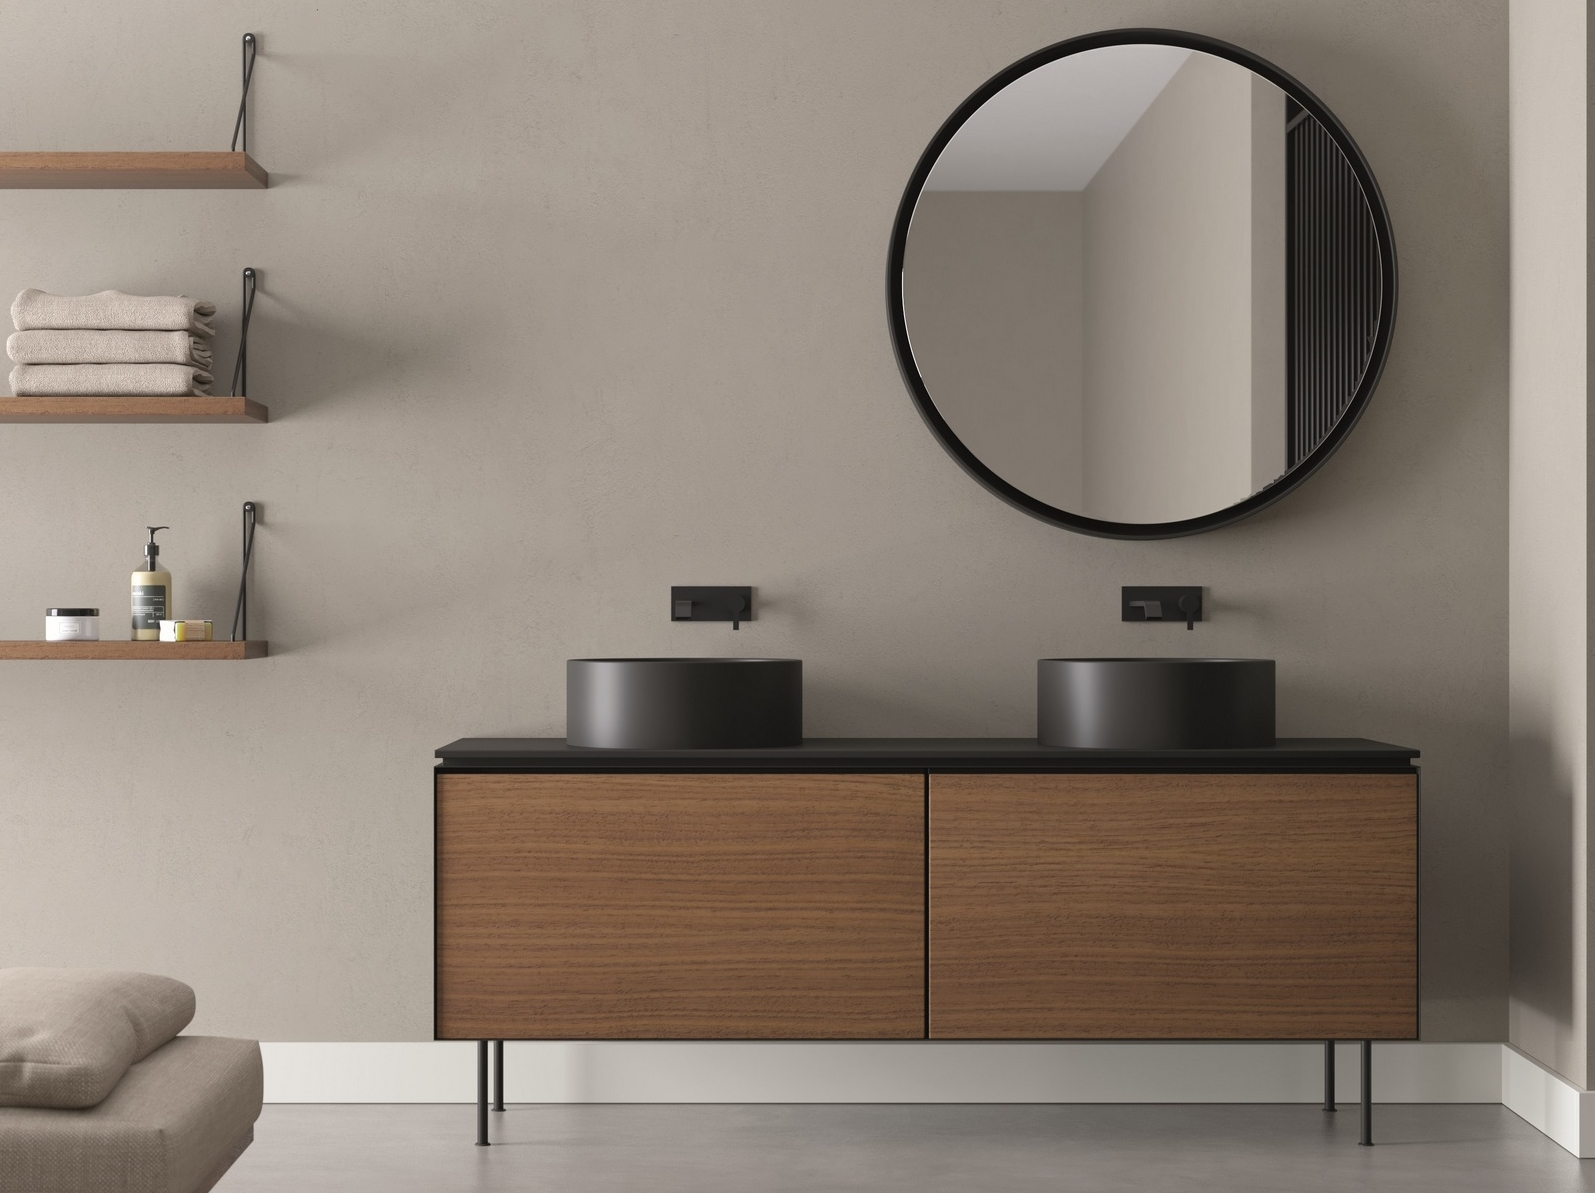 lama-double-vanity-unit-nic-design-437206-rel83c0ae4